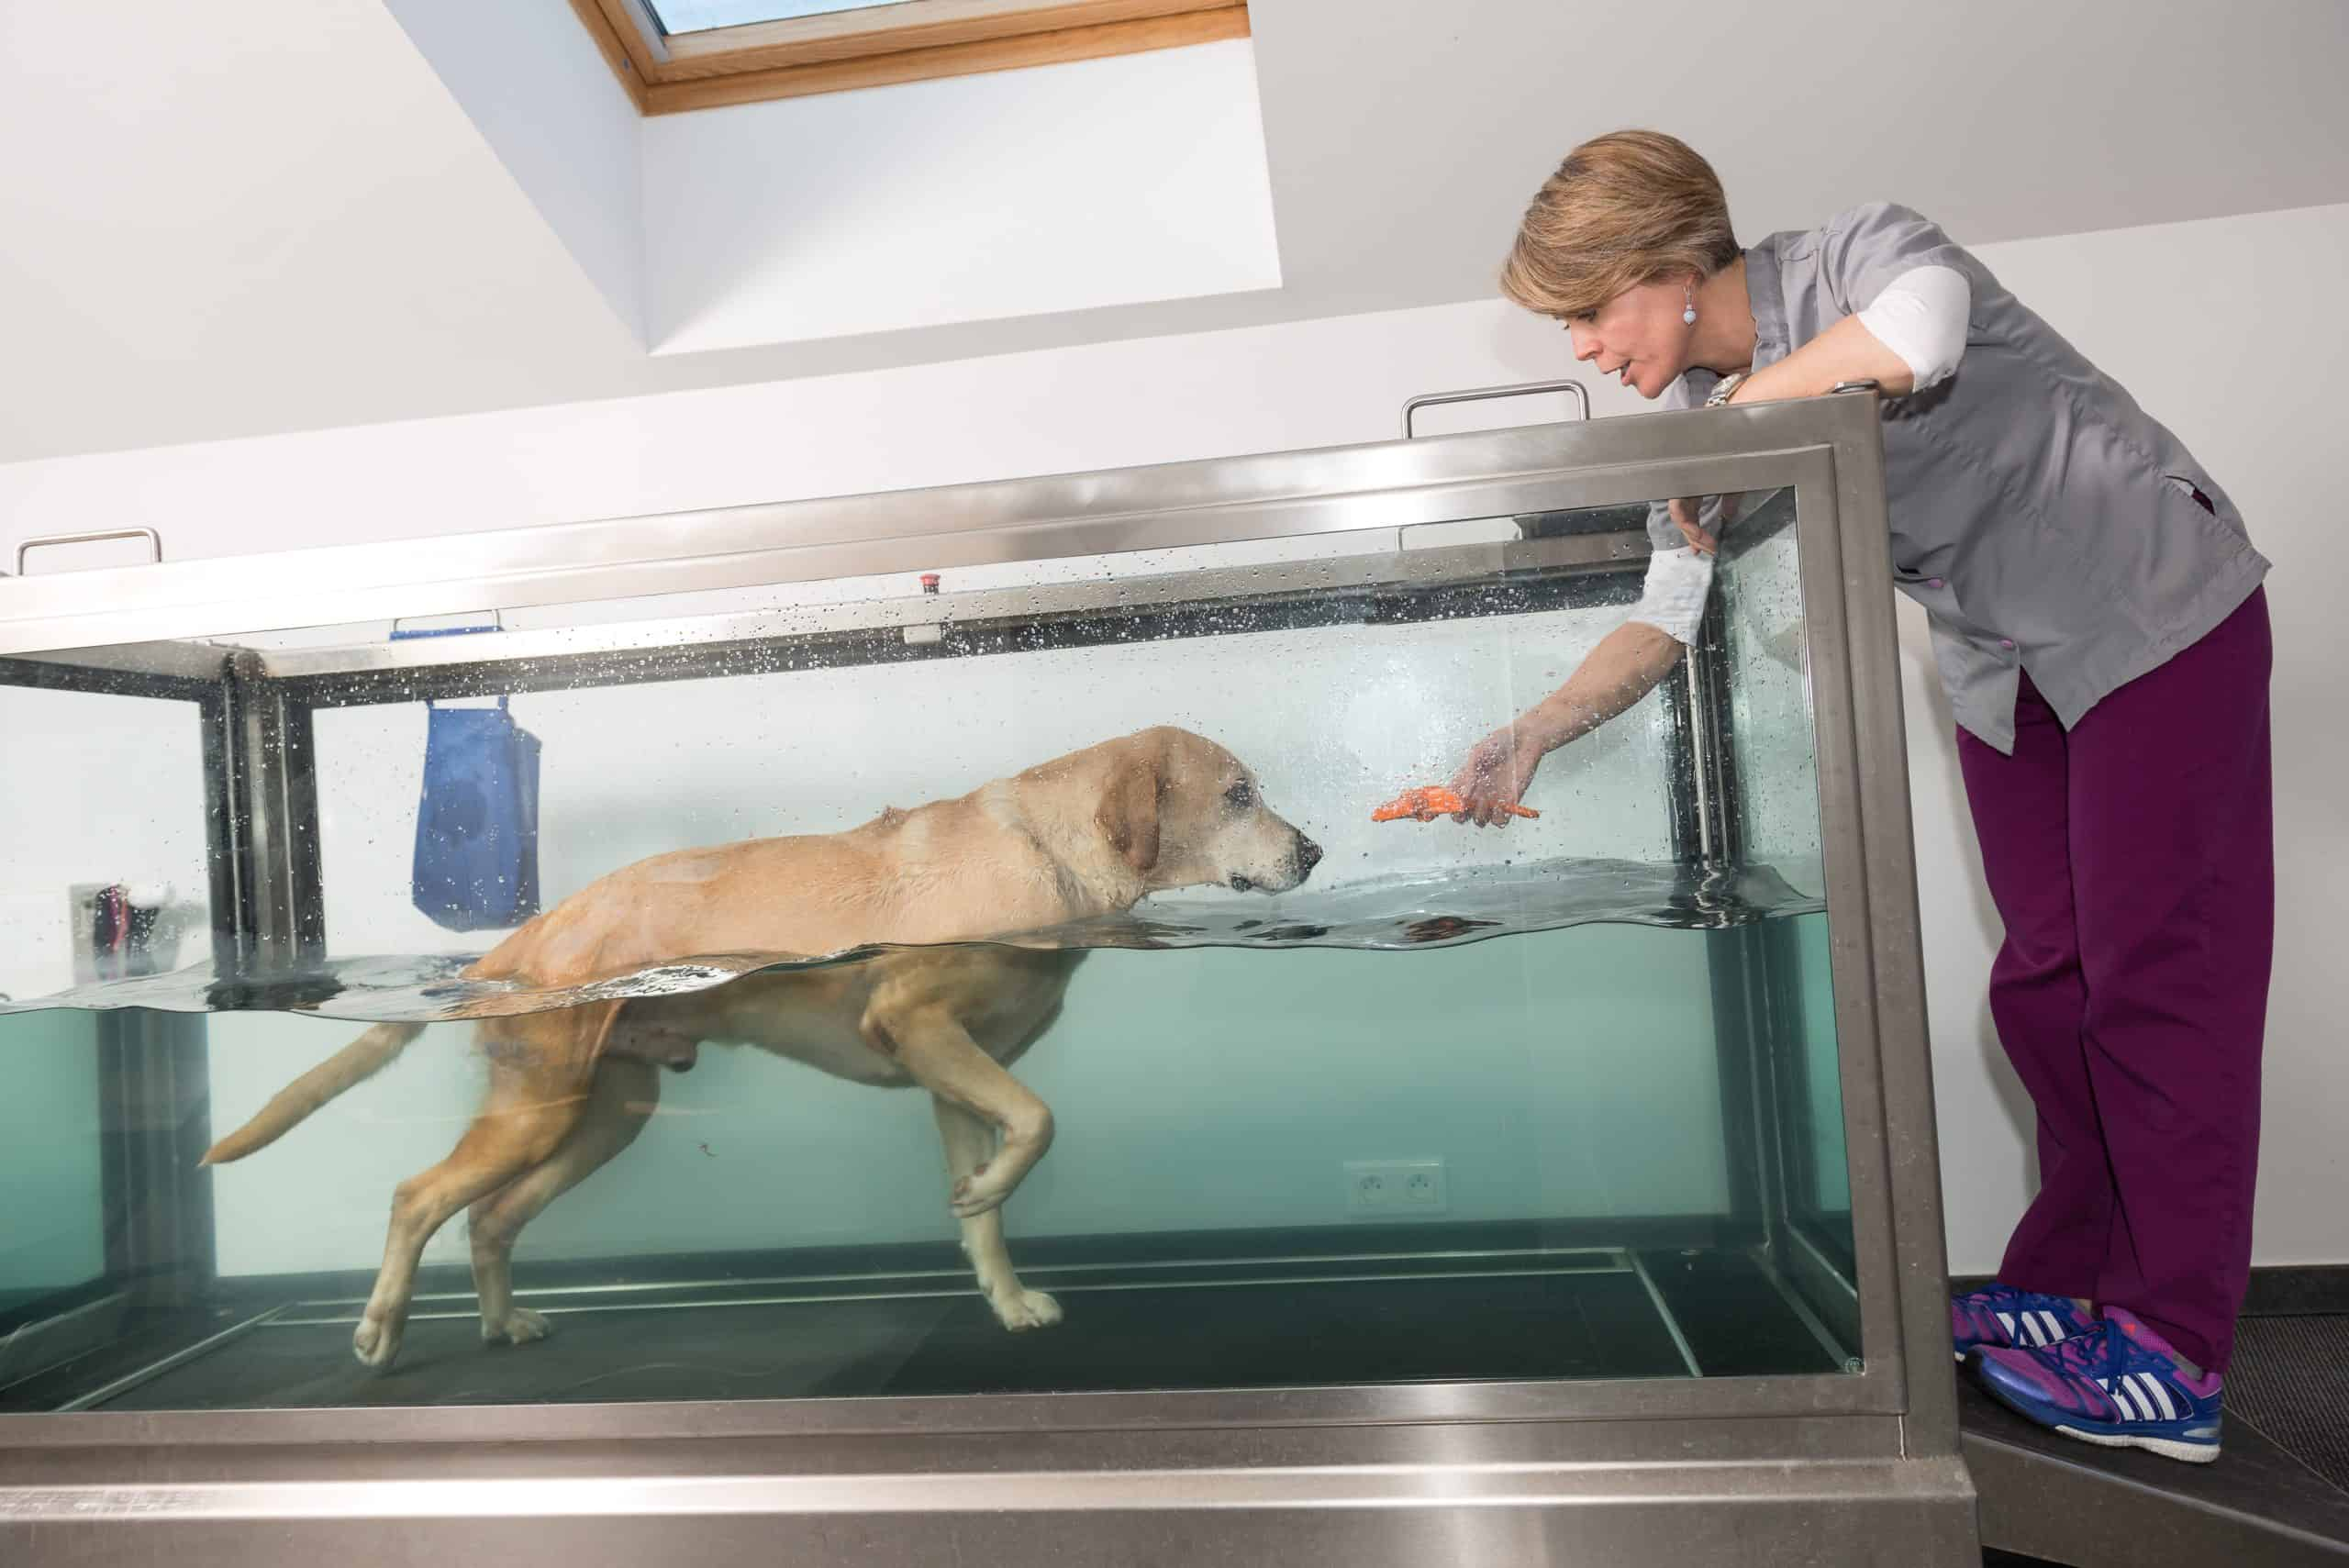 Therapist uses hydrotherapy to help Labrador retriever recover. Reports and studies show that when carried out correctly by an experienced and certified canine rehabilitation specialist, the post-surgery care for dogs process can have a lot of positive effects.